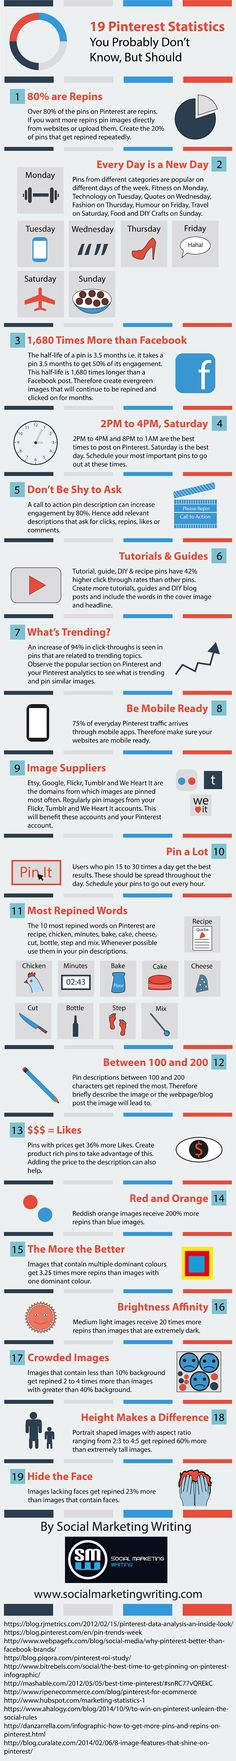 What Are 19 Helpful Pinterest Statistics For Getting More Results? #infographic